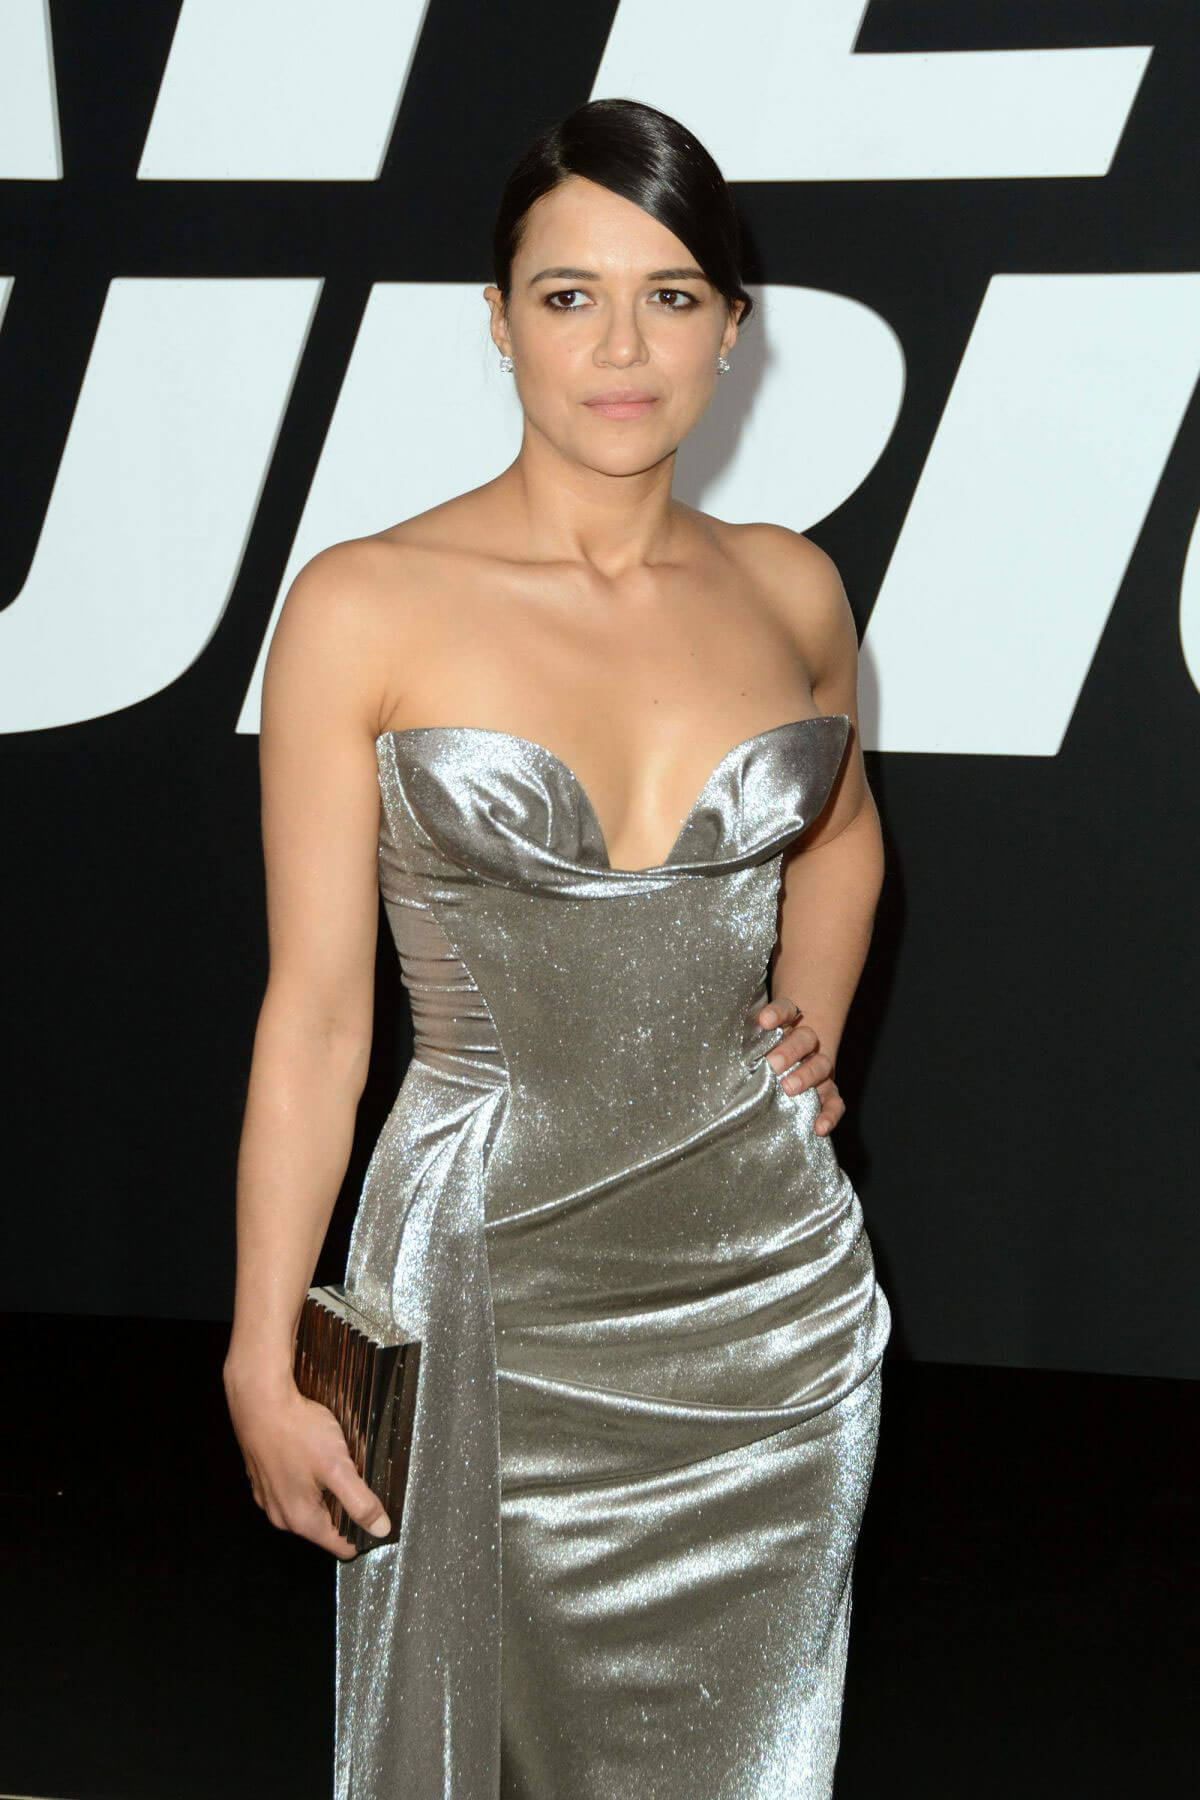 Michelle Rodriguez Stills at The Fate of the Furious Premiere in New York